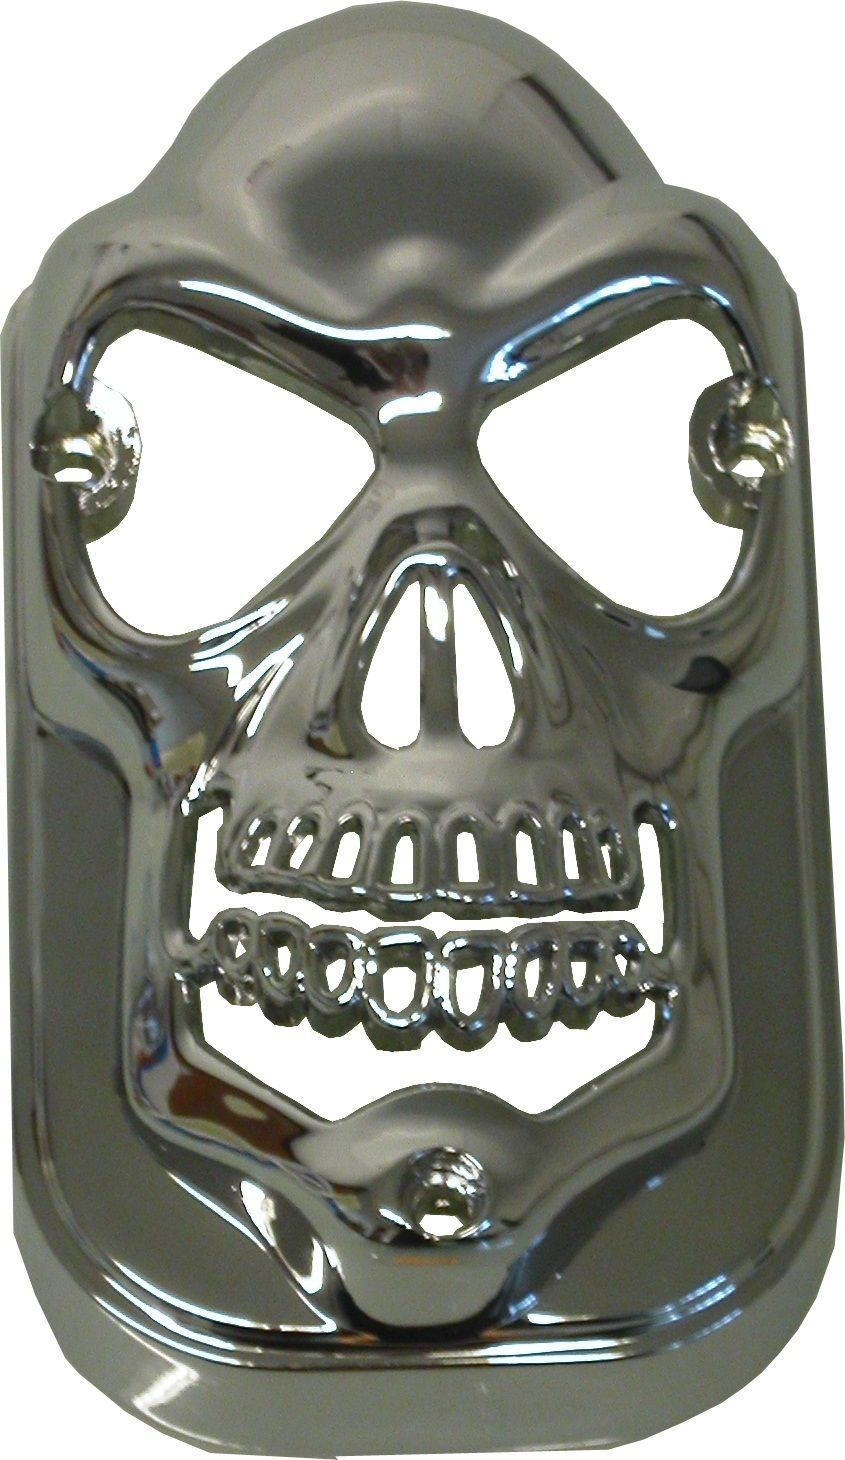 Motorcycle Chrome Die Cast Skull Taillight Cover to Fit